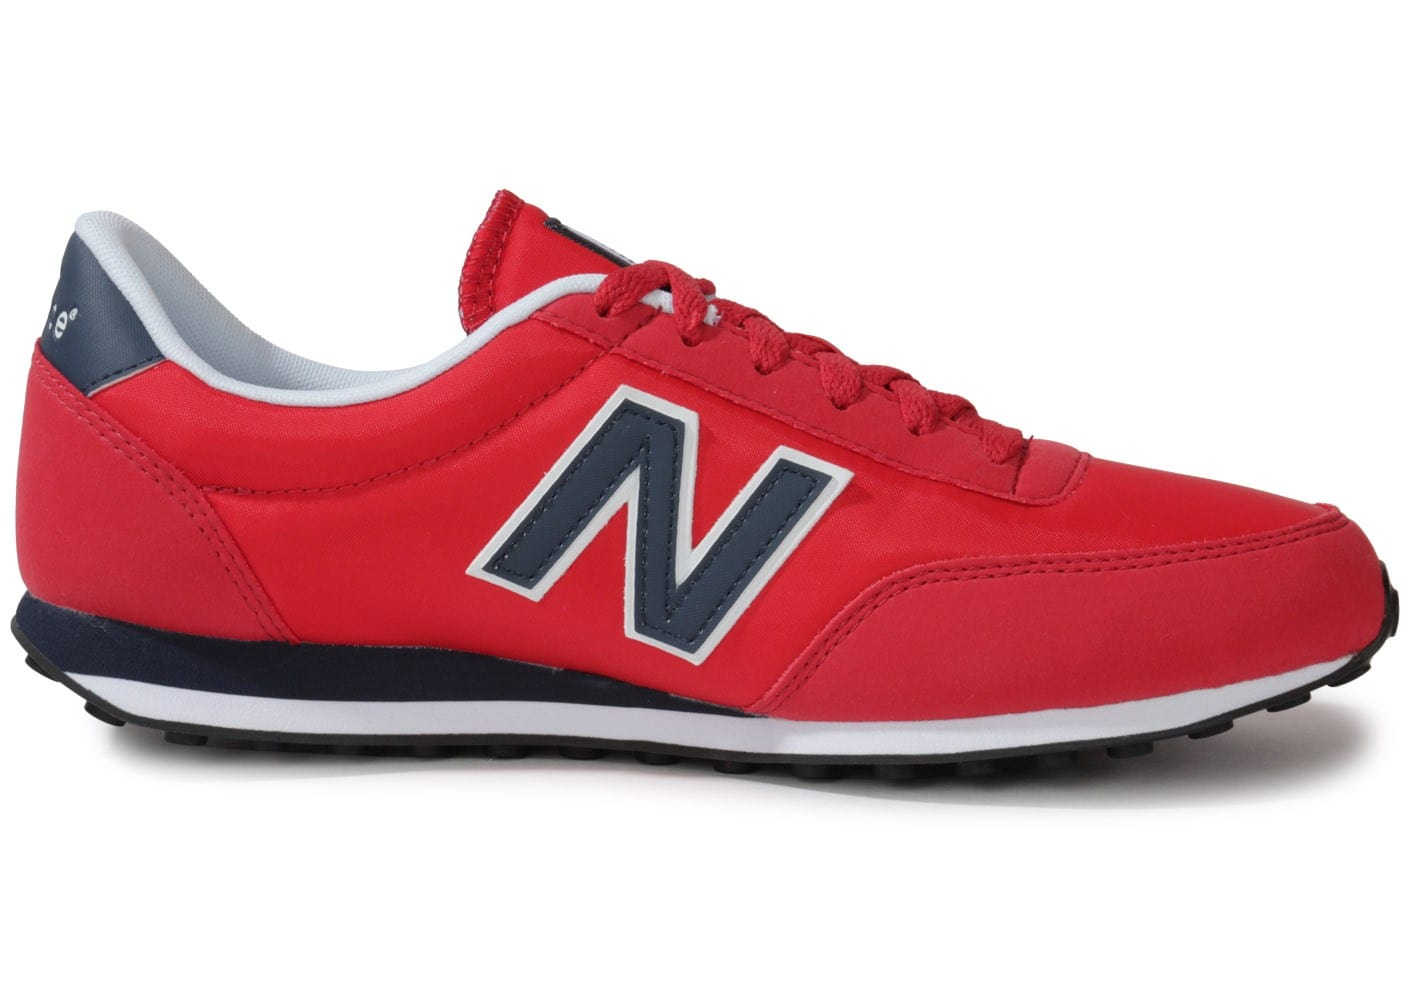 New Balance U410 Rouge - Chaussures Homme - Chausport